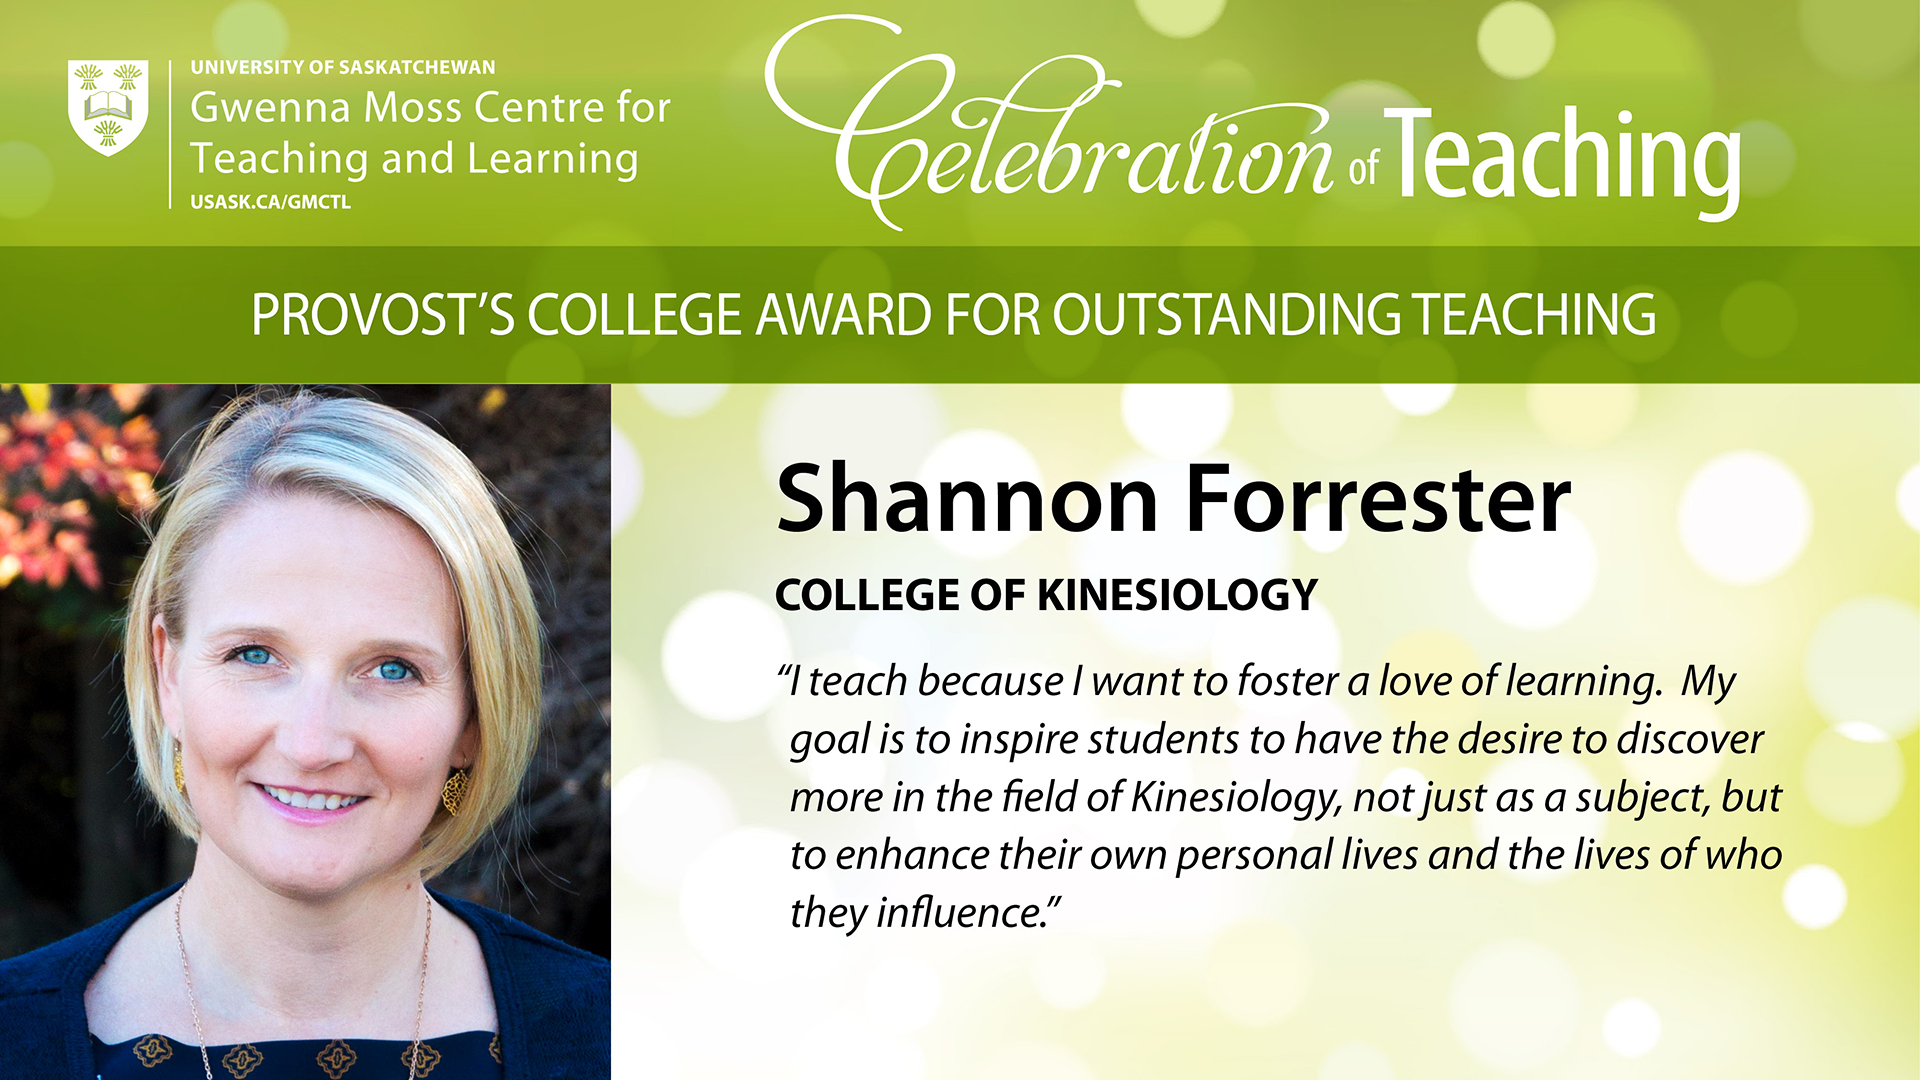 S Forrester - Provost's College Award for Outstanding Teaching, 2017